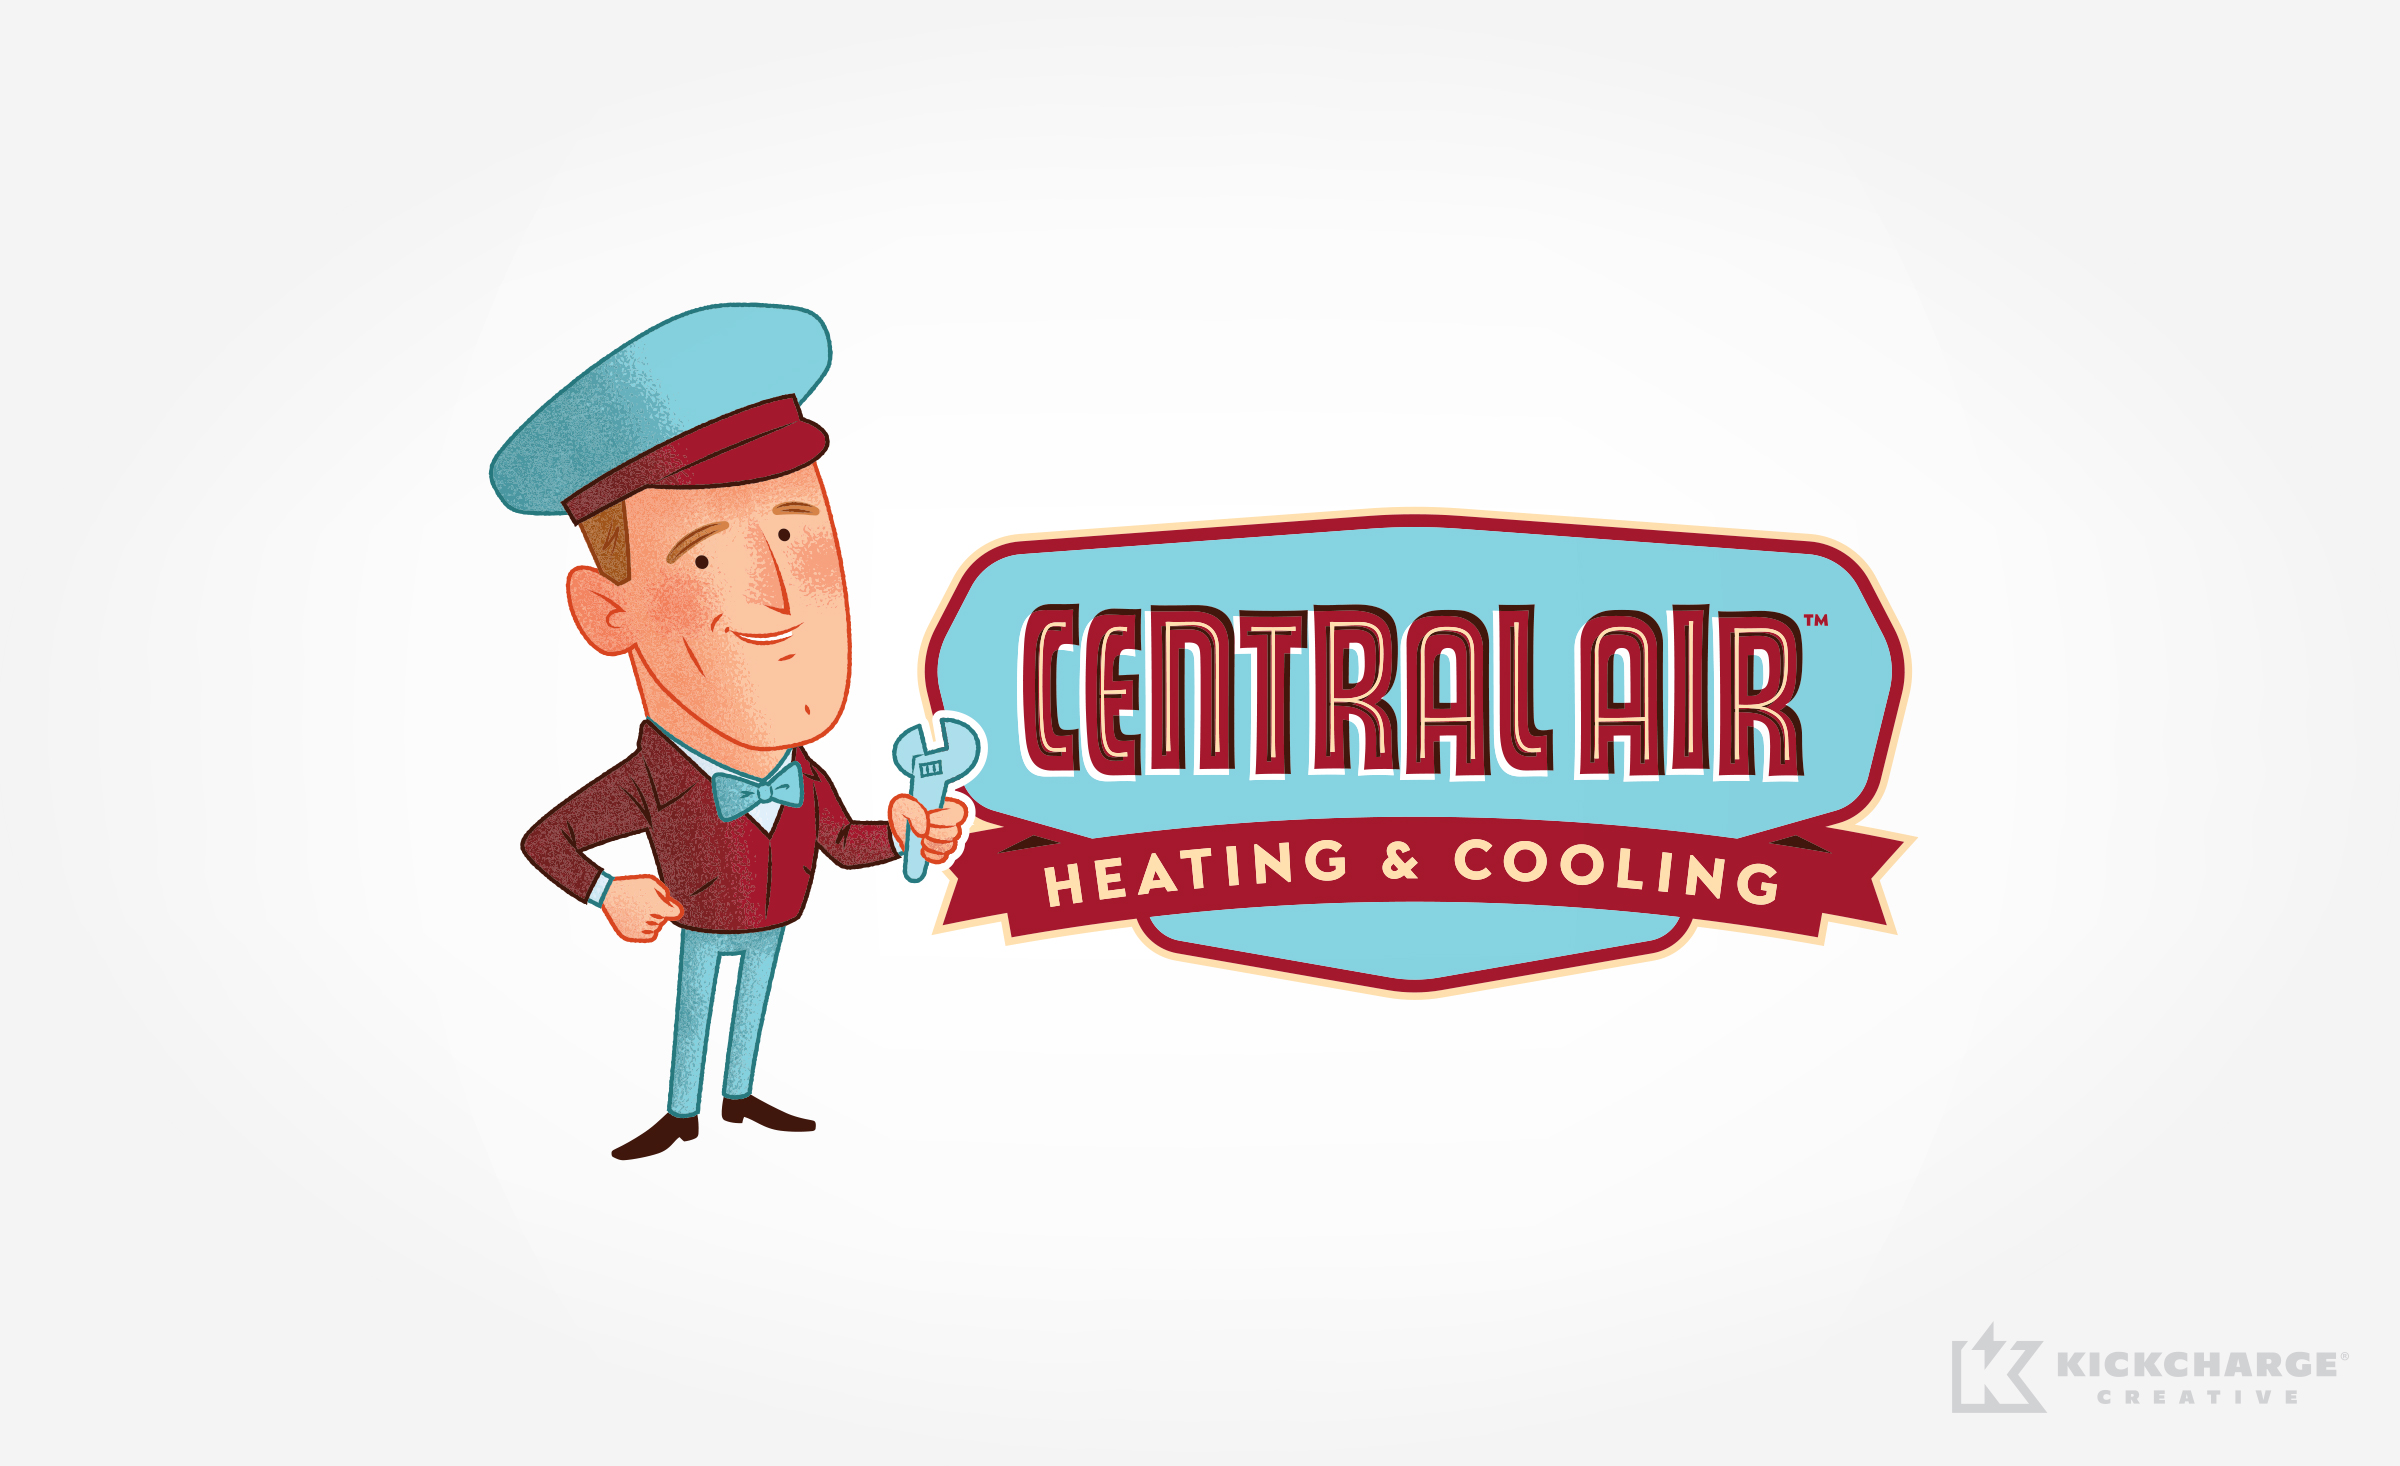 hvac logo for Central Air Heating & Cooling